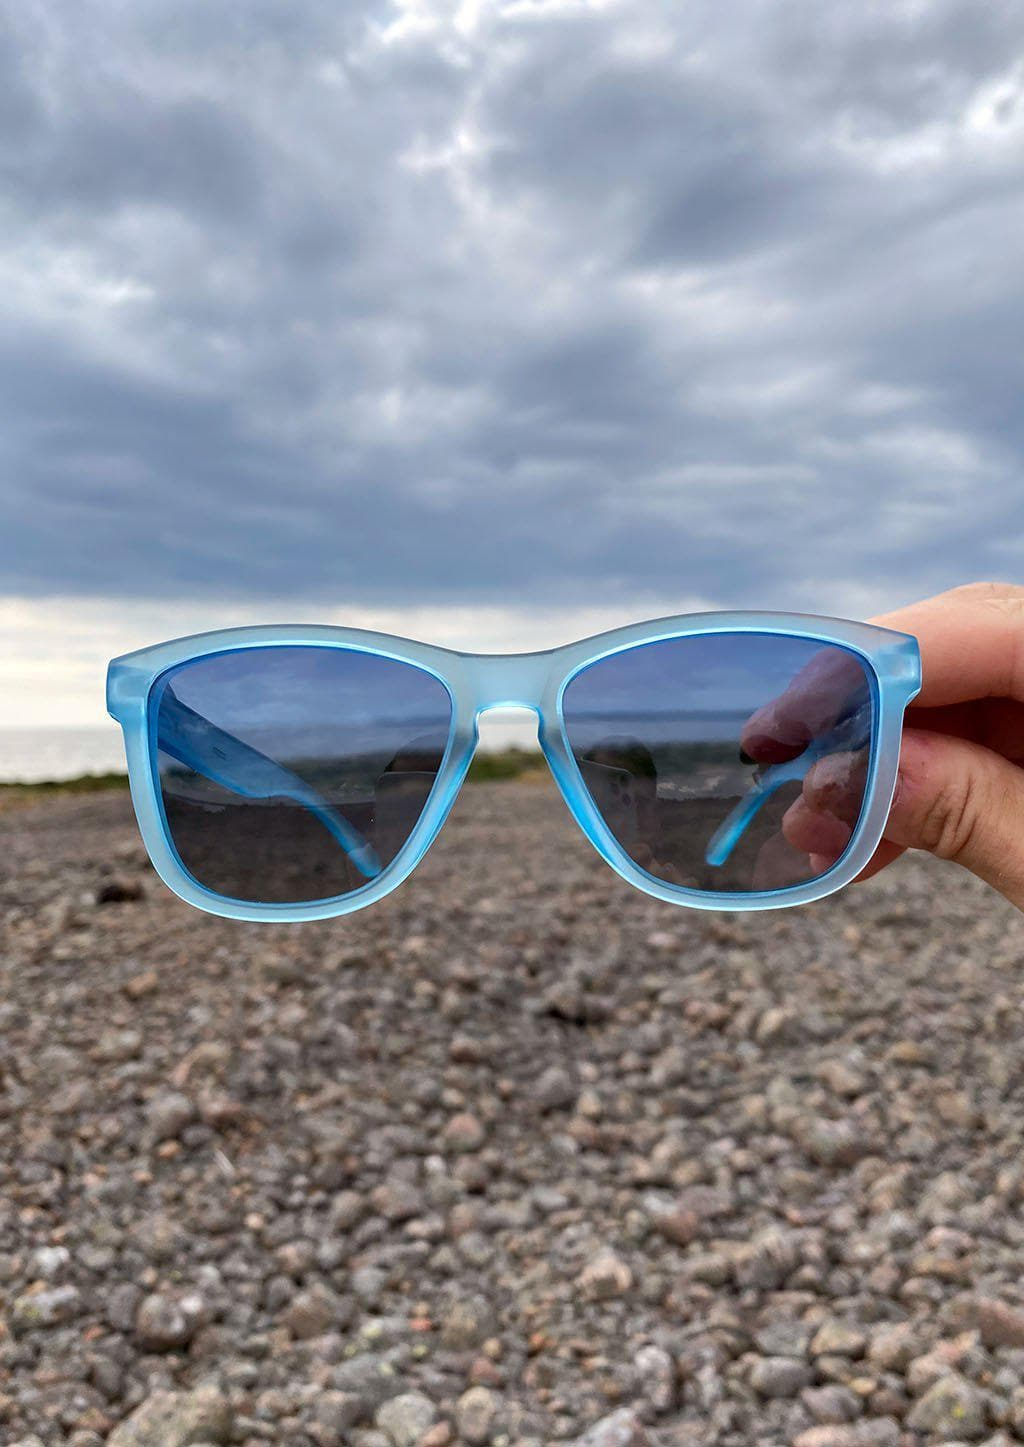 Our Mood V2 is an improved version of our last wayfarers. Plastic body for great quality and durabilty. This is Belize with blue frame and blue lenses. Outside from the front.